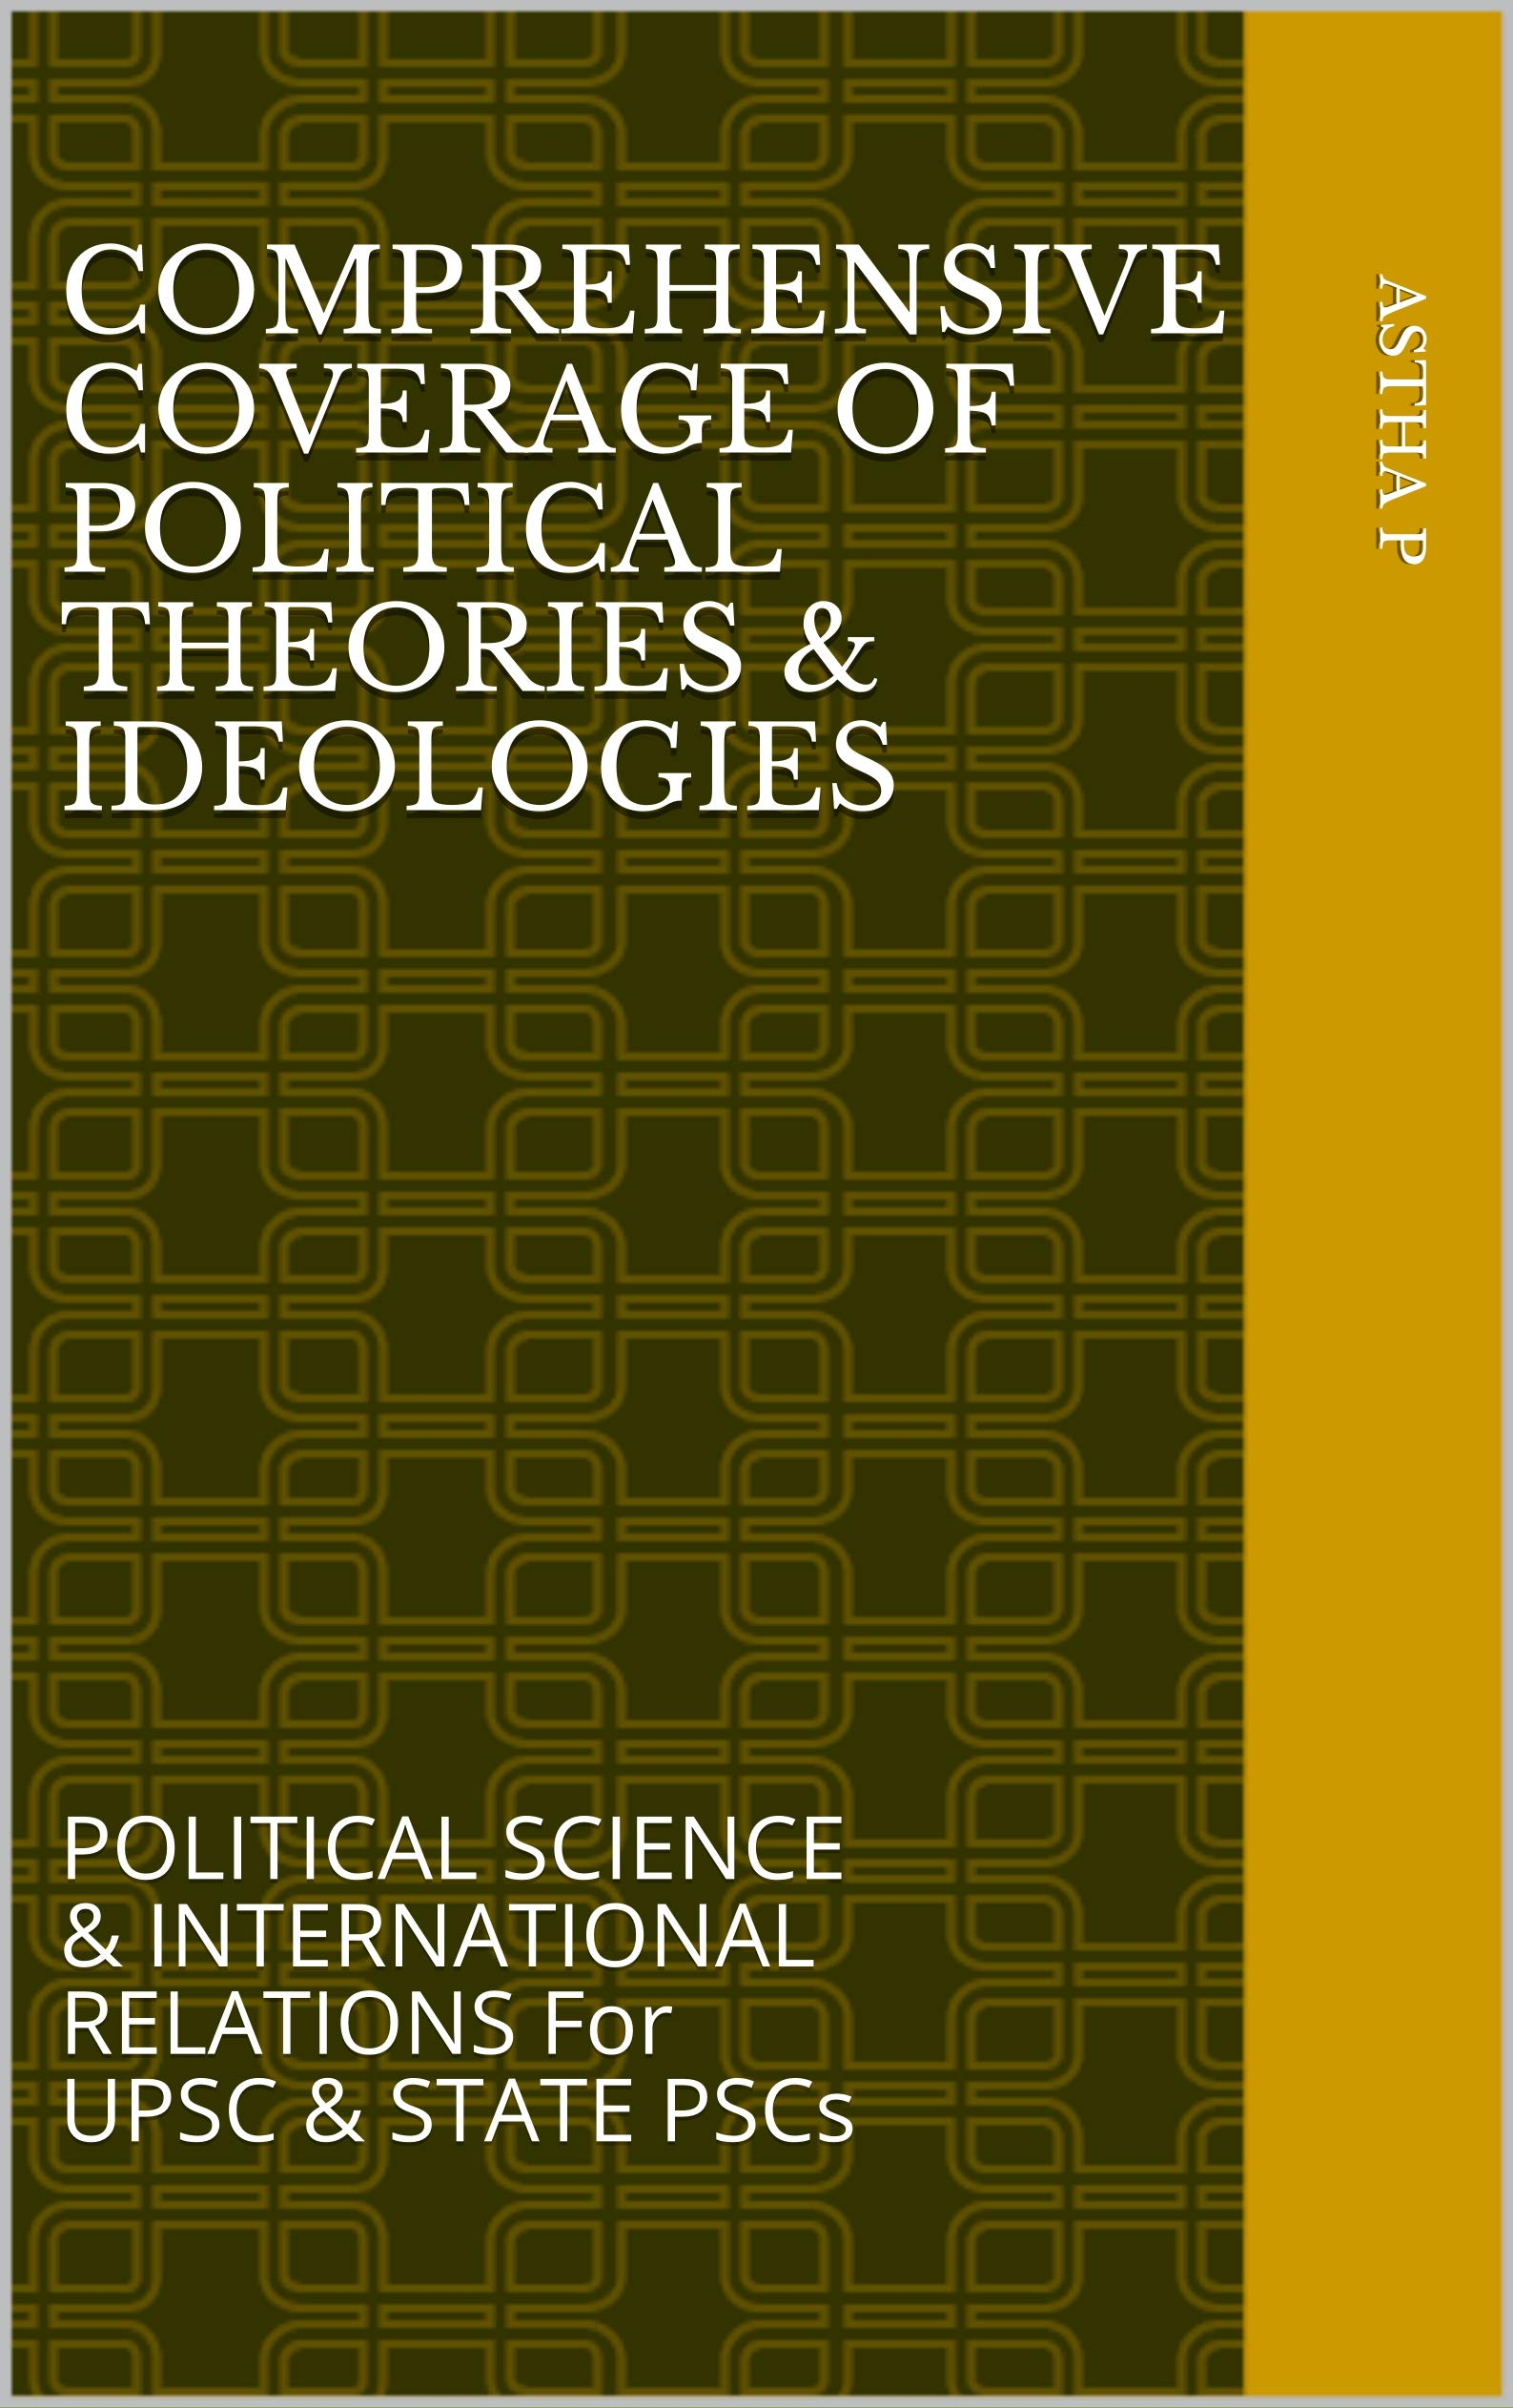 Comprehensive Coverage of POLITICAL THEORIES & IDEOLOGIES: POLITICAL SCIENCE & INTERNATIONAL RELATIONS For UPSC & STATE PSCs